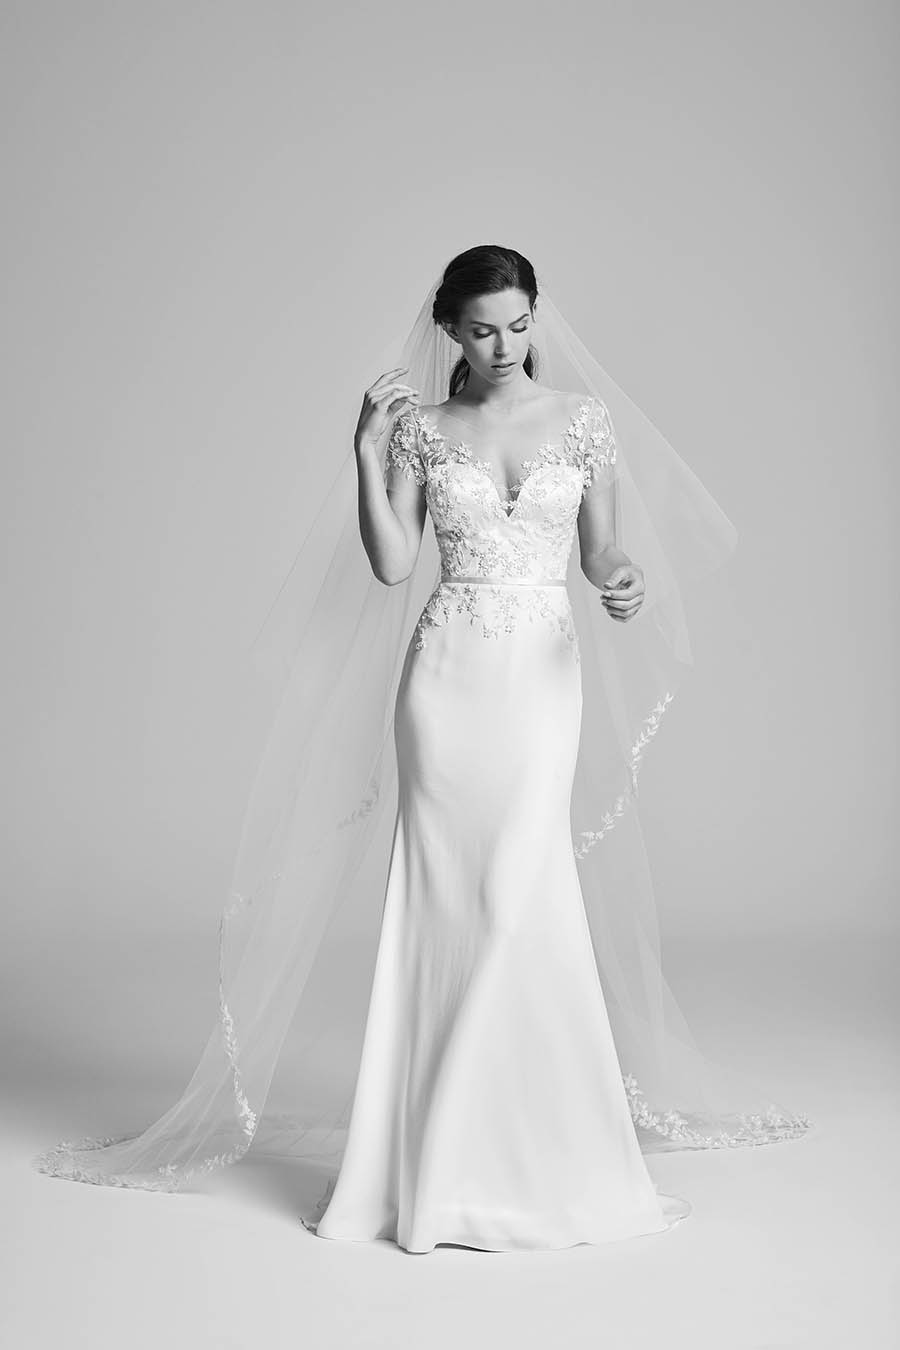 Bridal, Suzanne Neville, Wedding Gown, Wedding Dress, Bride